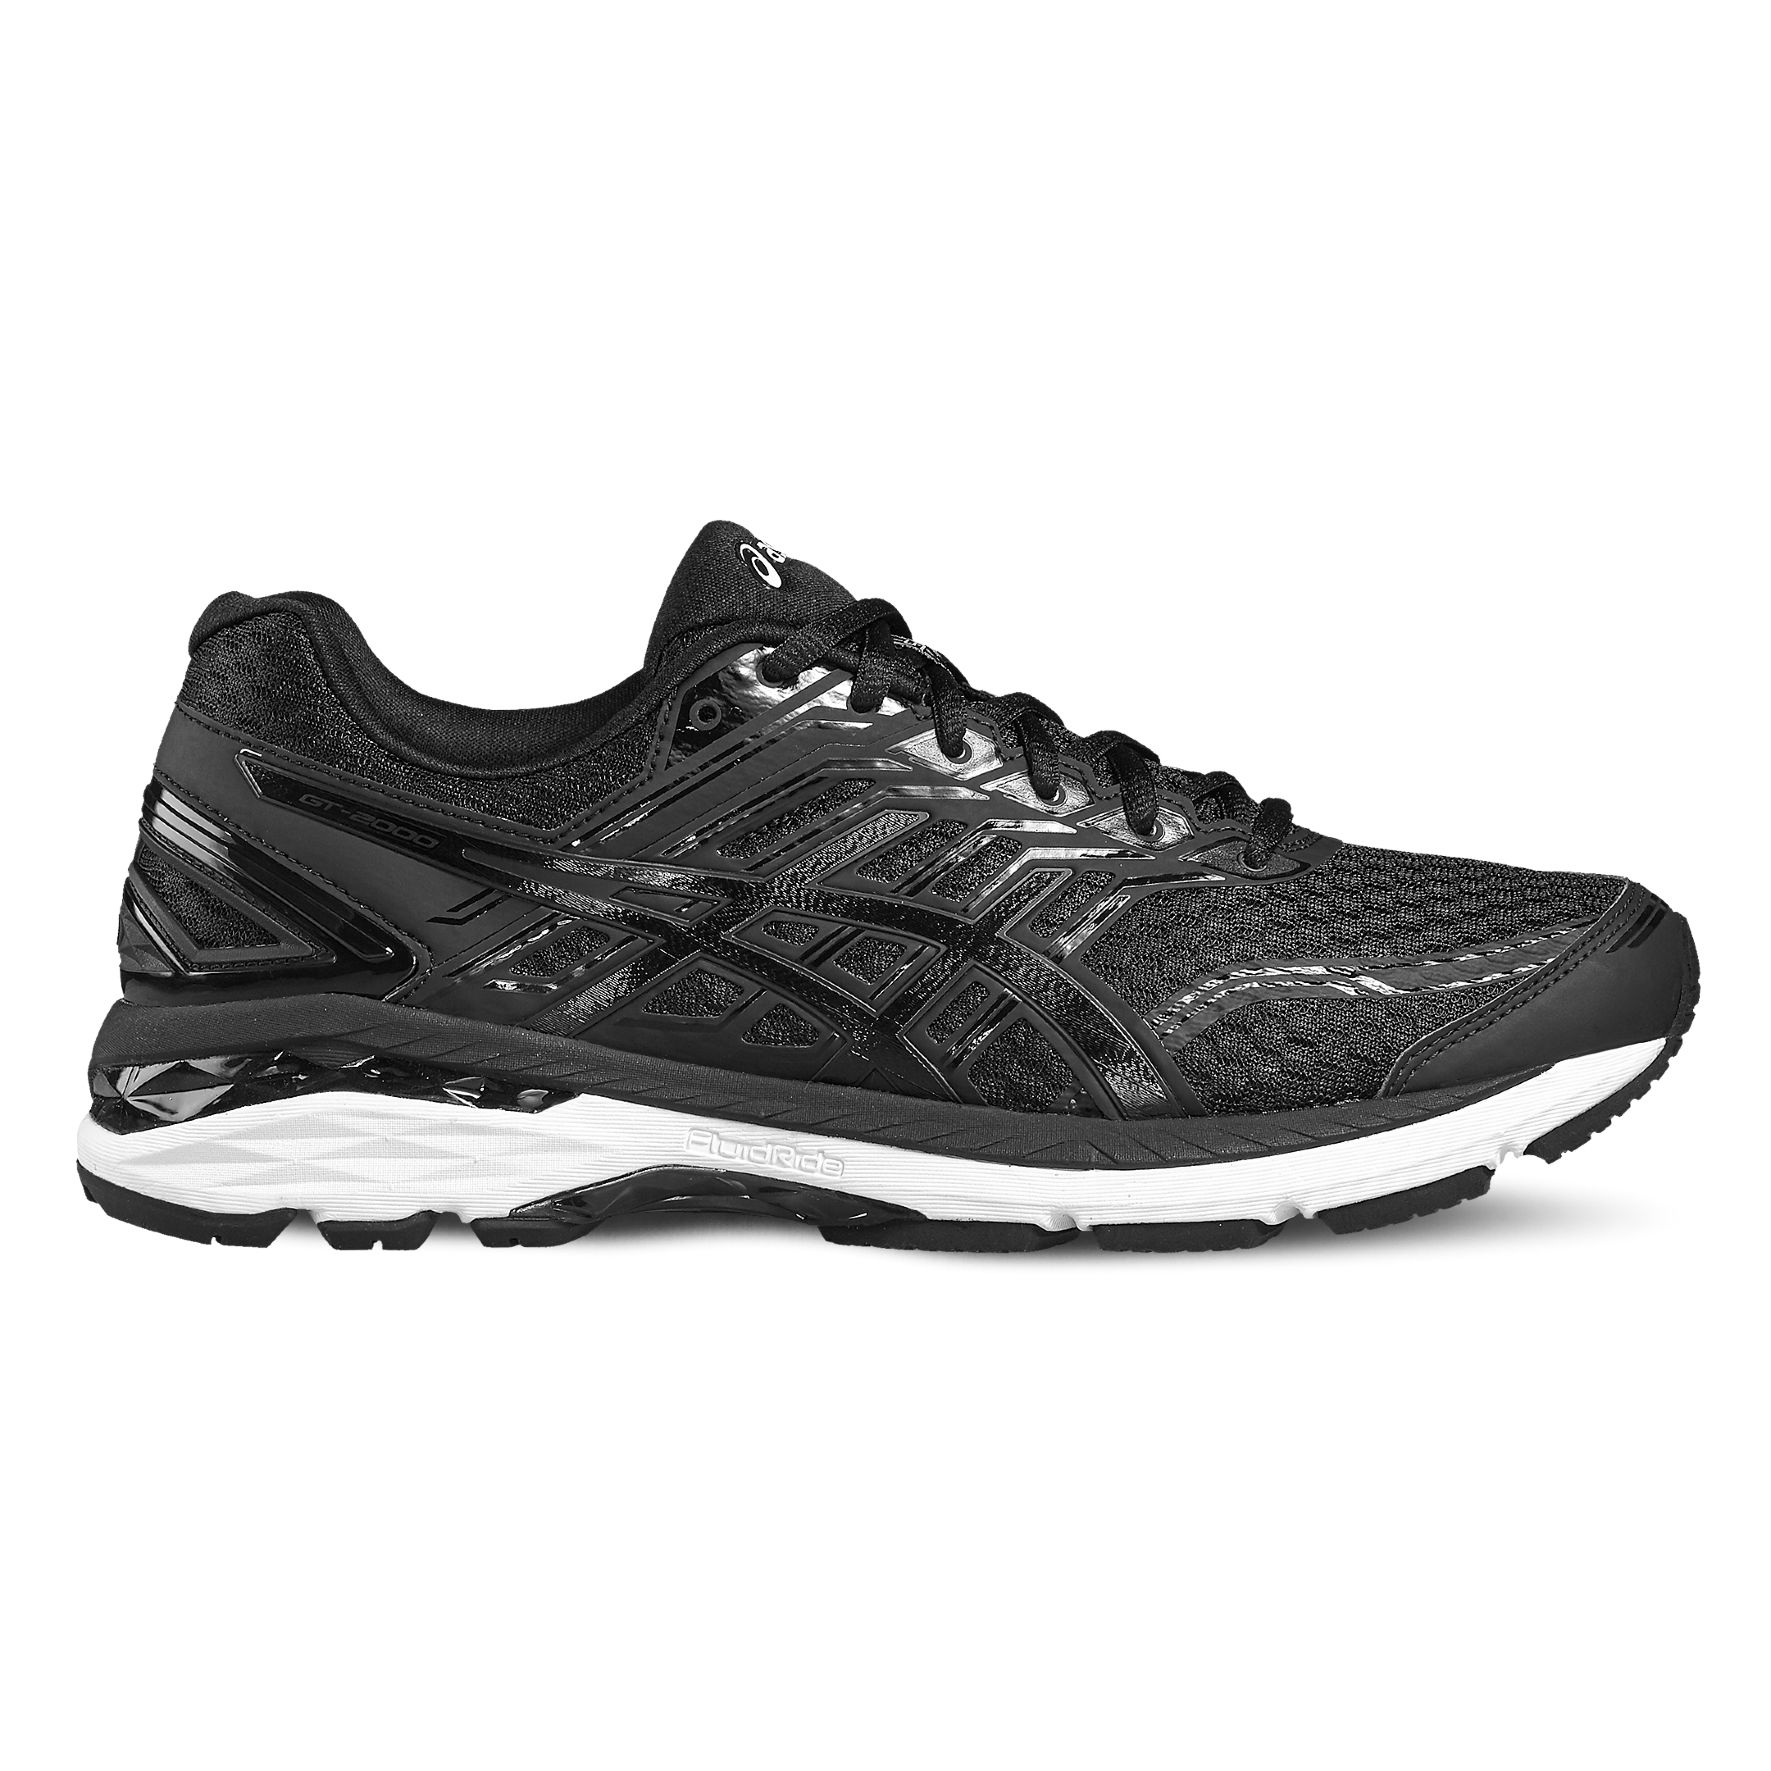 Asics Lady GT 2000 5 in Schwarz